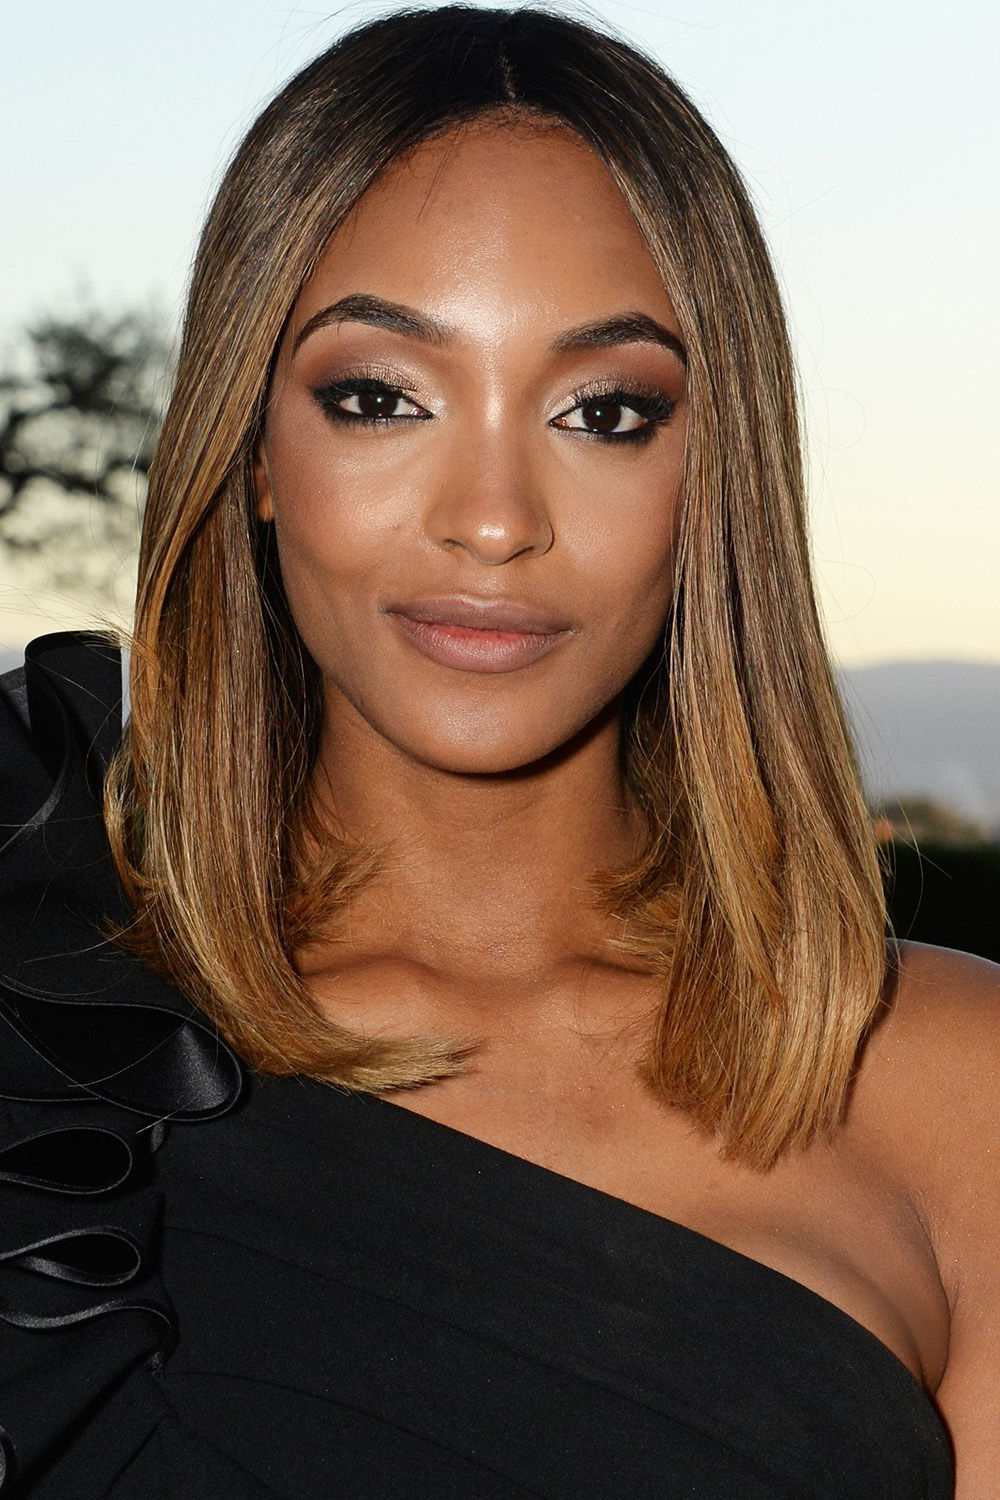 40 Best Medium Hairstyles – Celebrities With Shoulder Length Haircuts Inside Short Shoulder Length Hairstyles For Women (View 4 of 25)